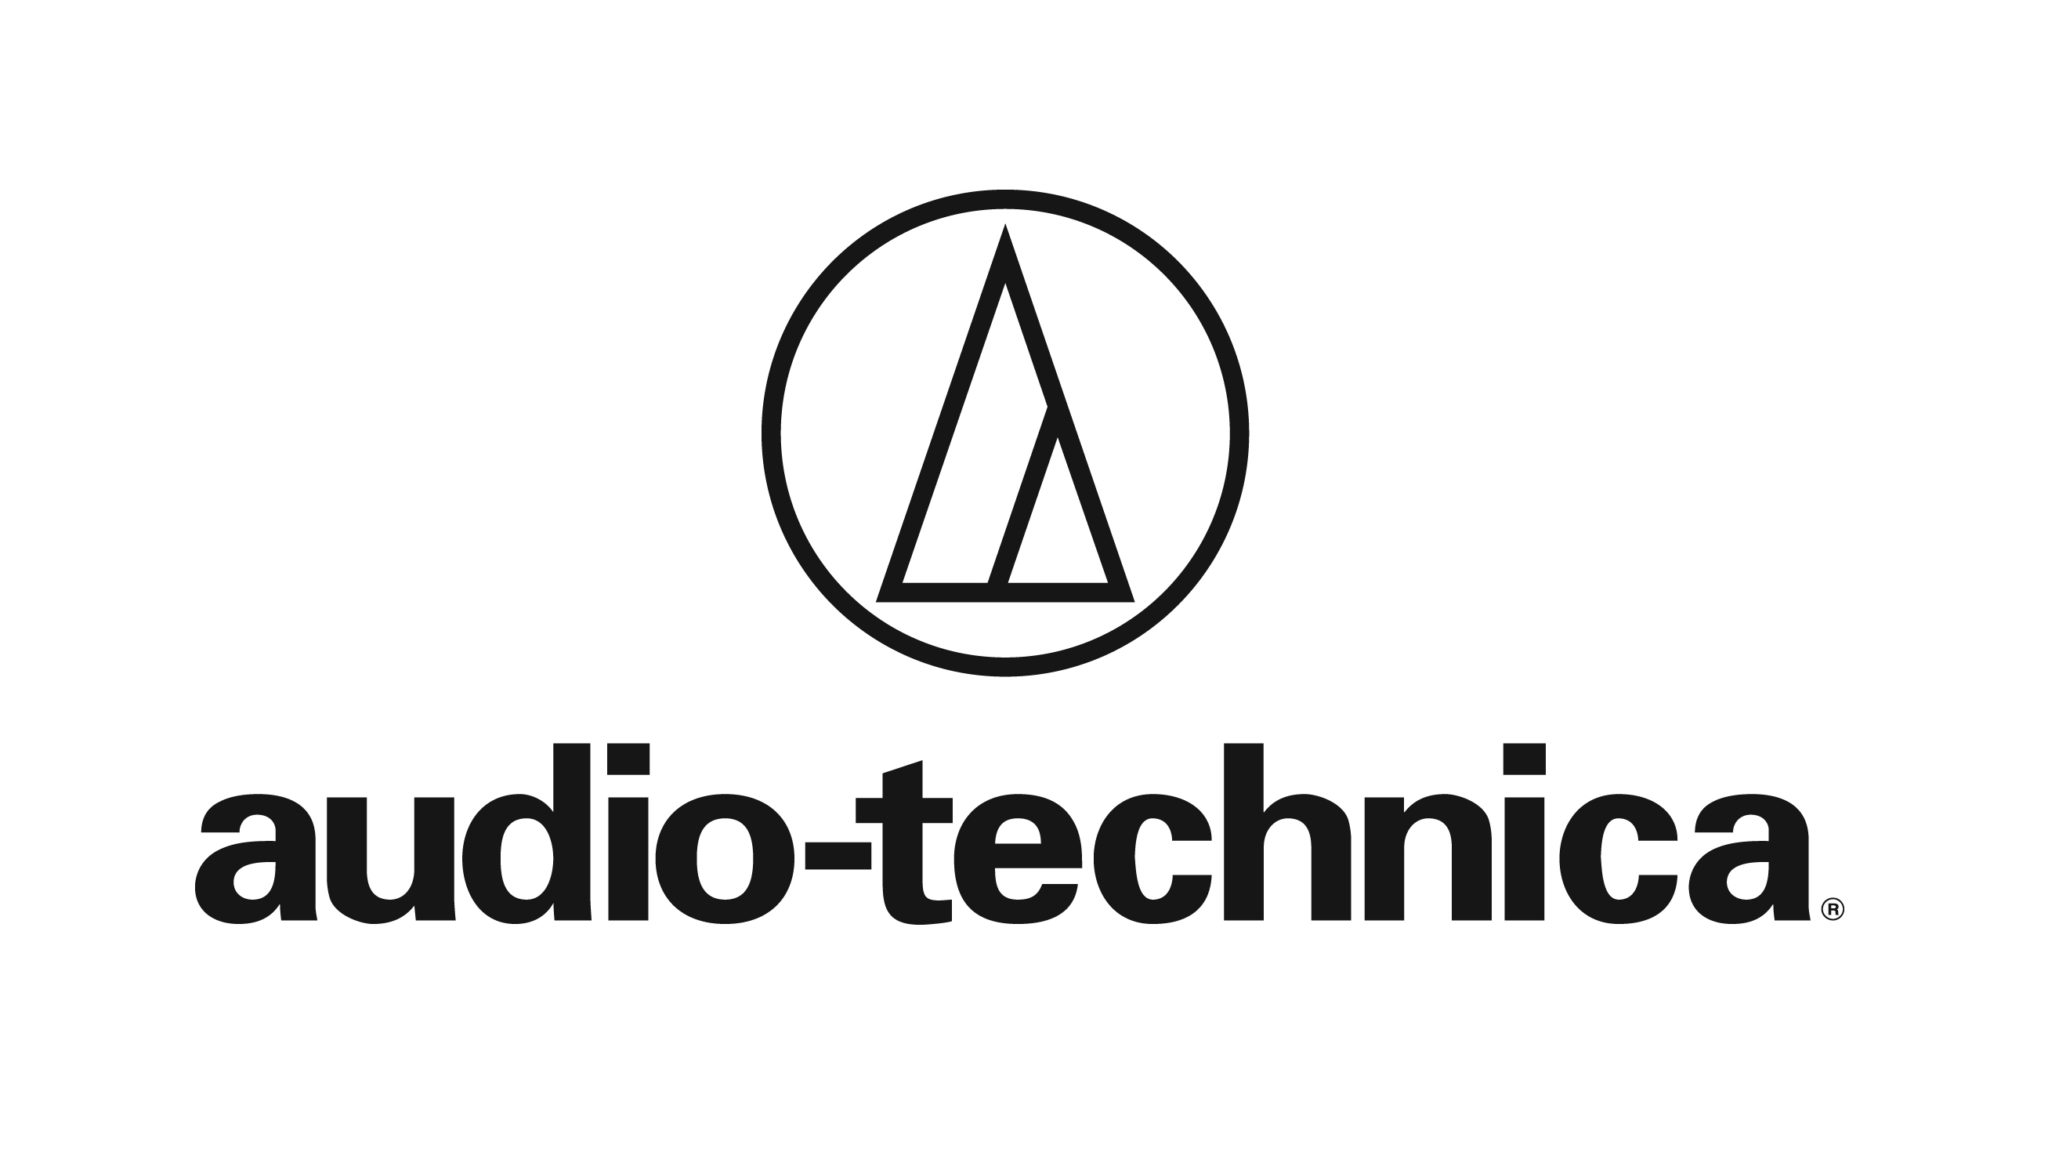 Audio-technica music products logo.